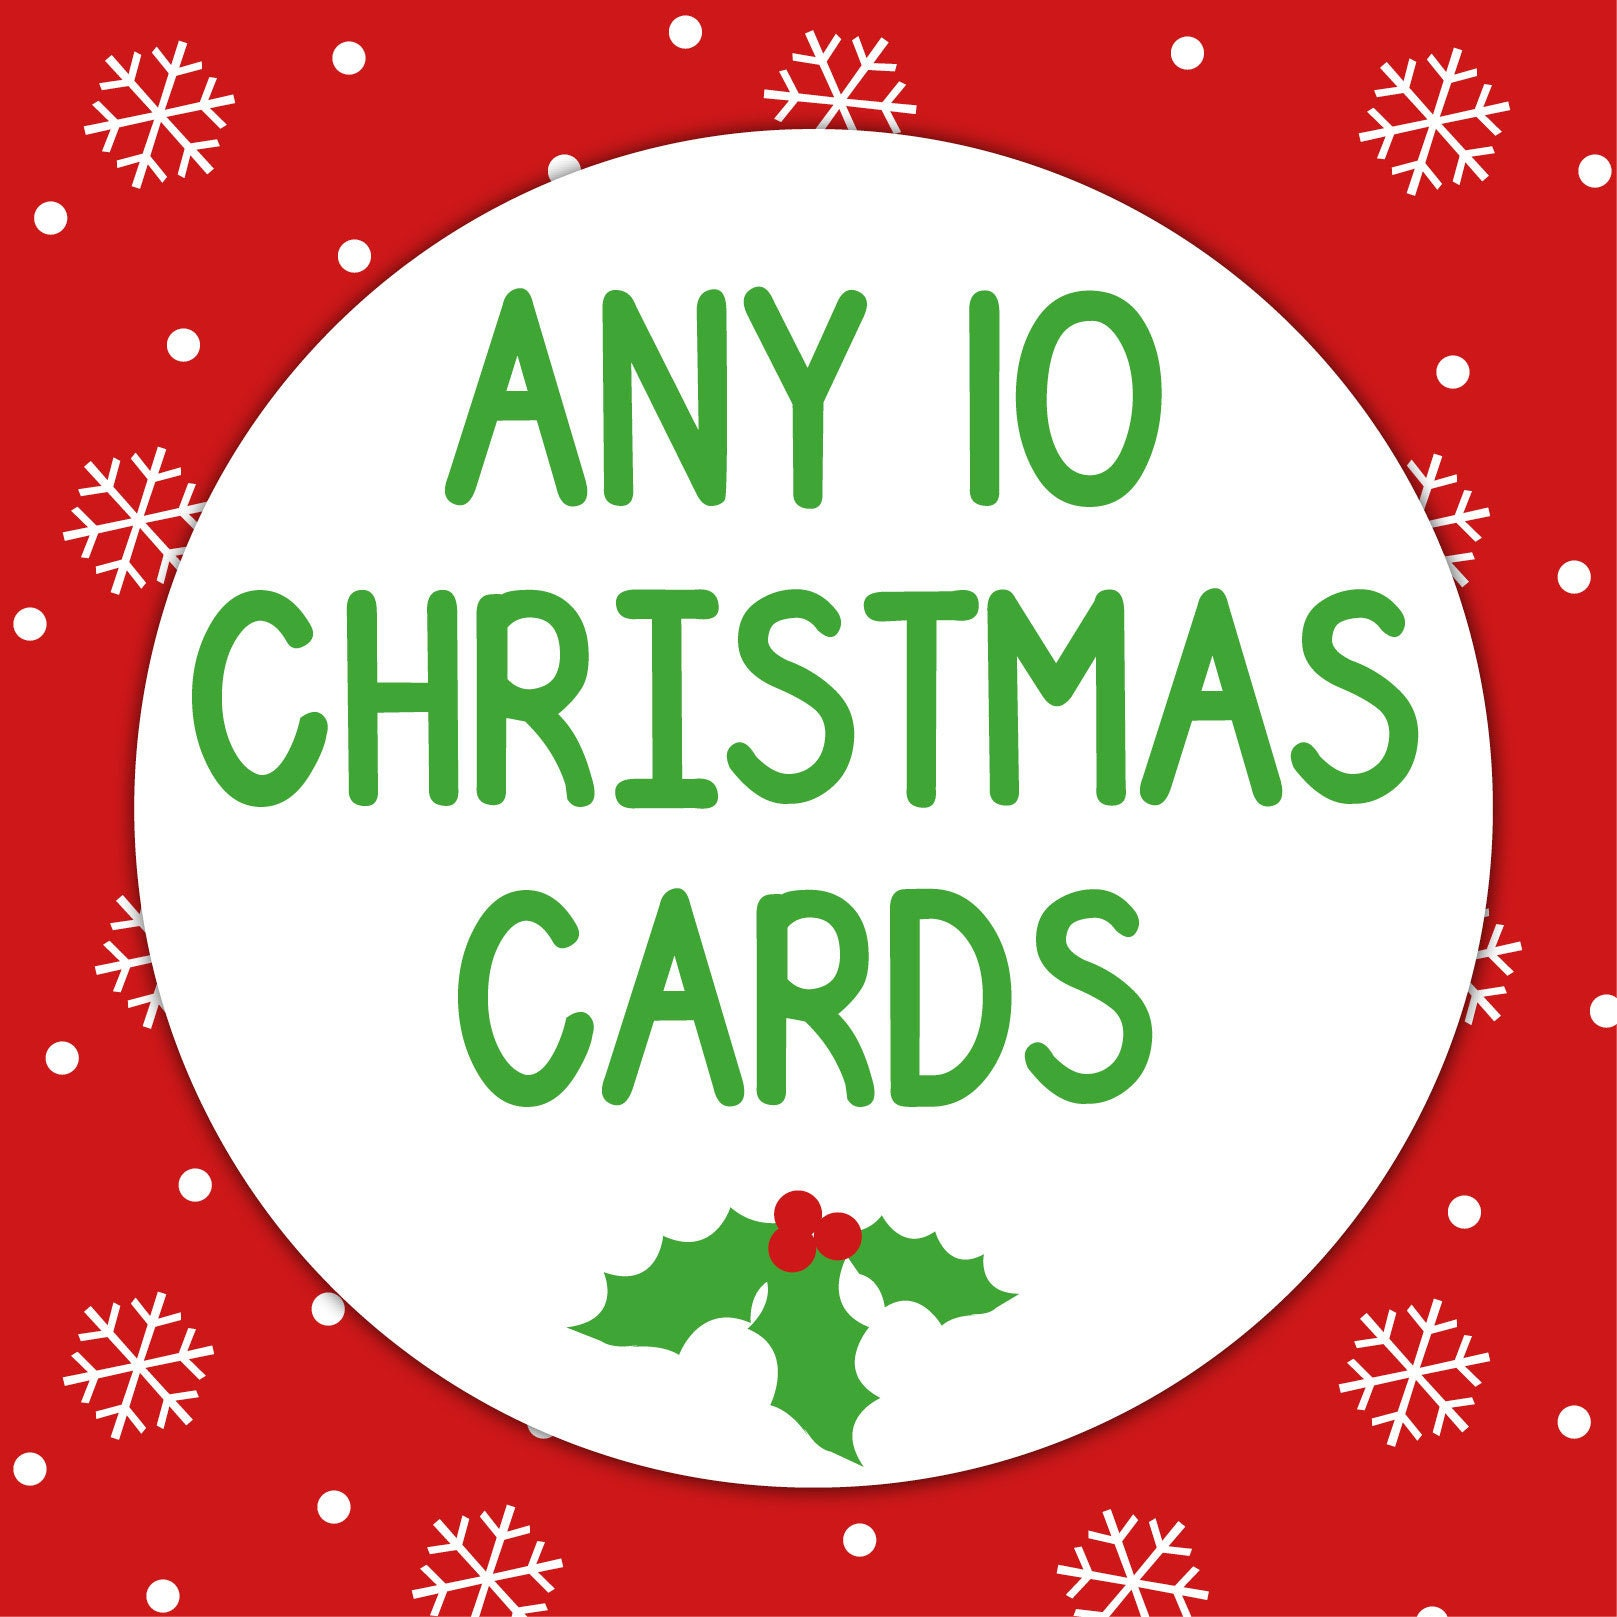 Buy any 10 cards from our unique range of Christmas cards